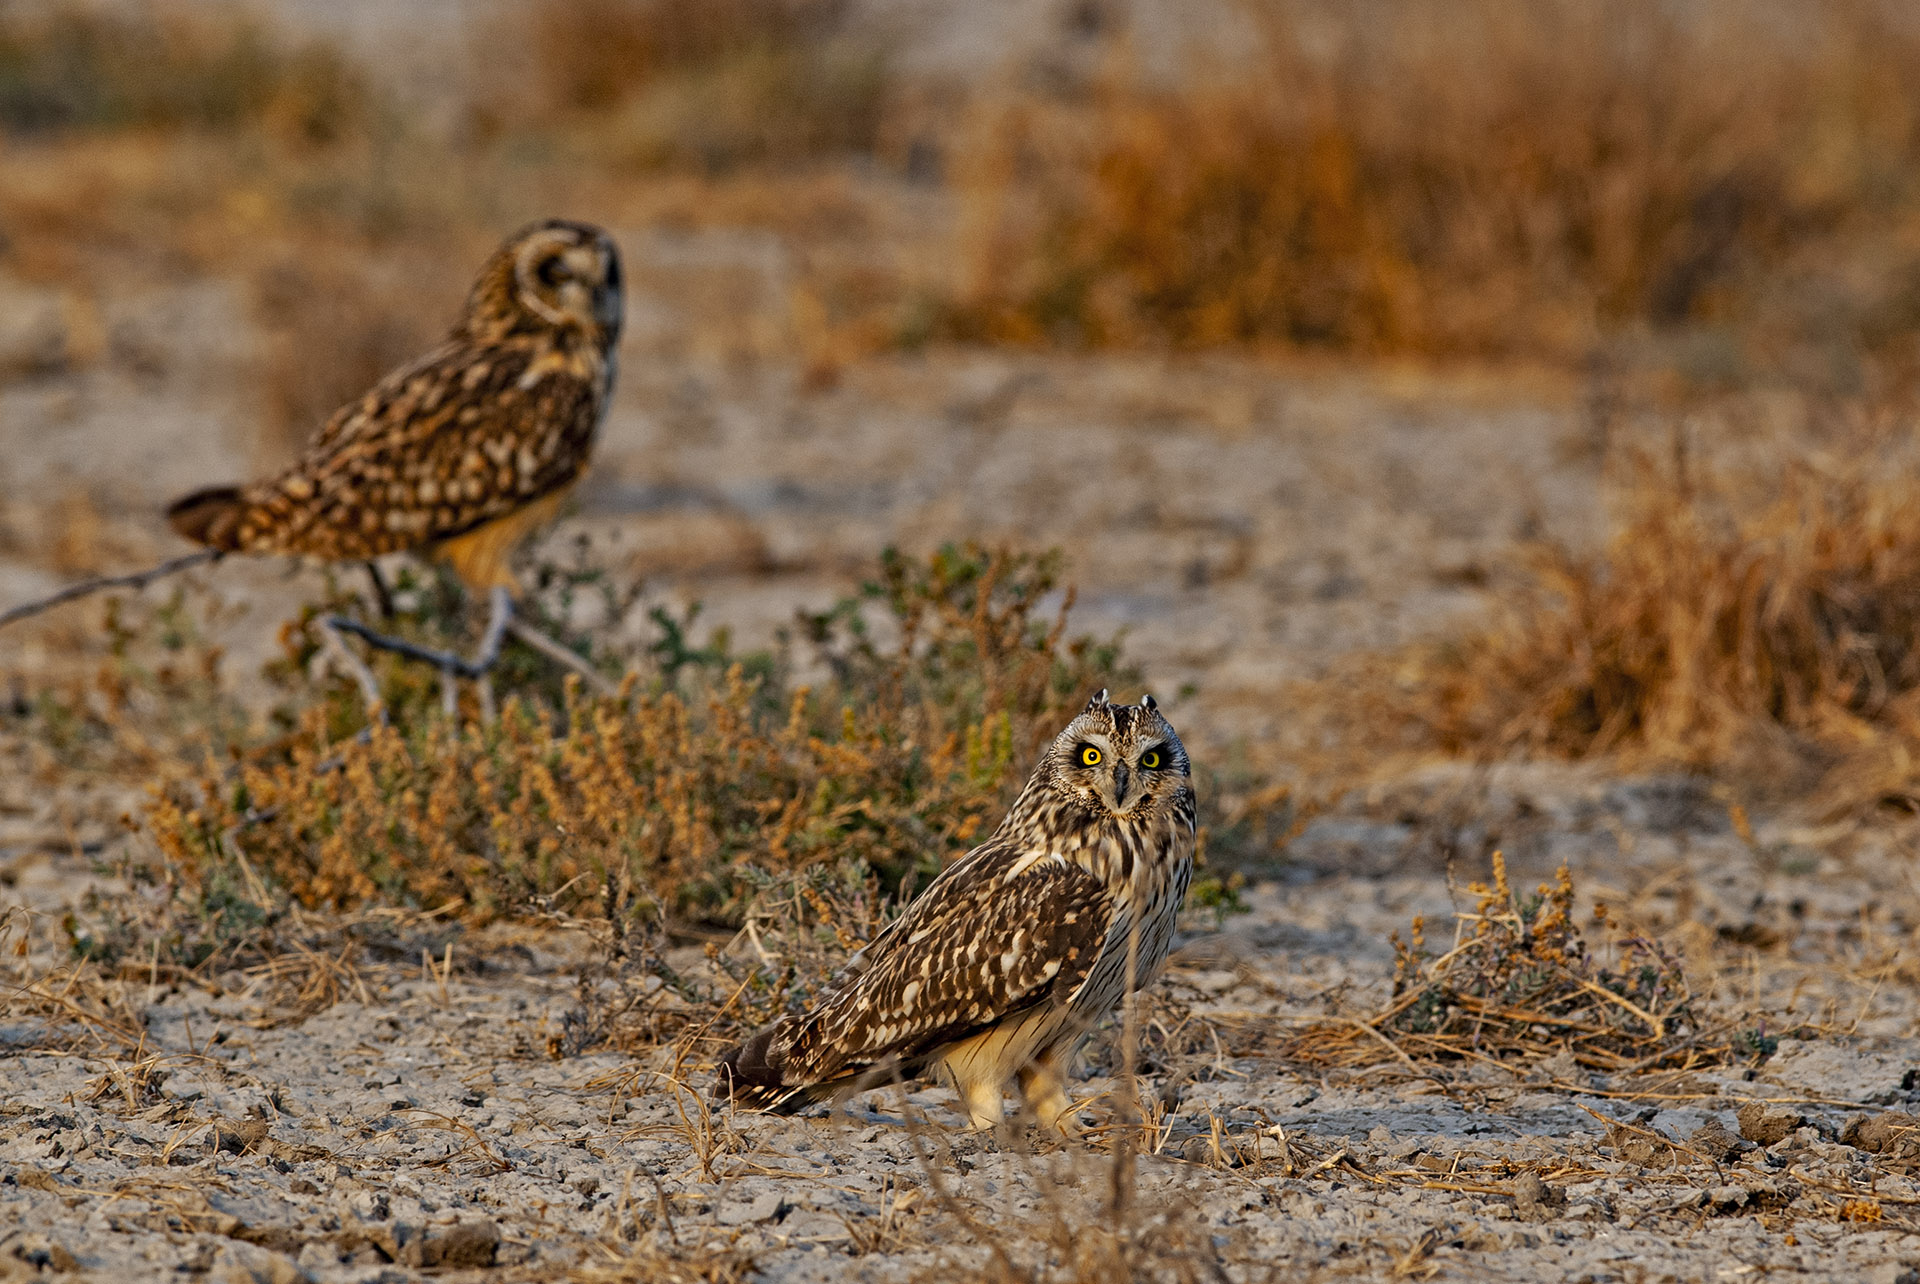 In the grasslands and arid scrublands of the Indian Wild Ass Sanctuary in Gujarat, short-eared owls primarily perch at ground level and may be seen alone or in pairs.